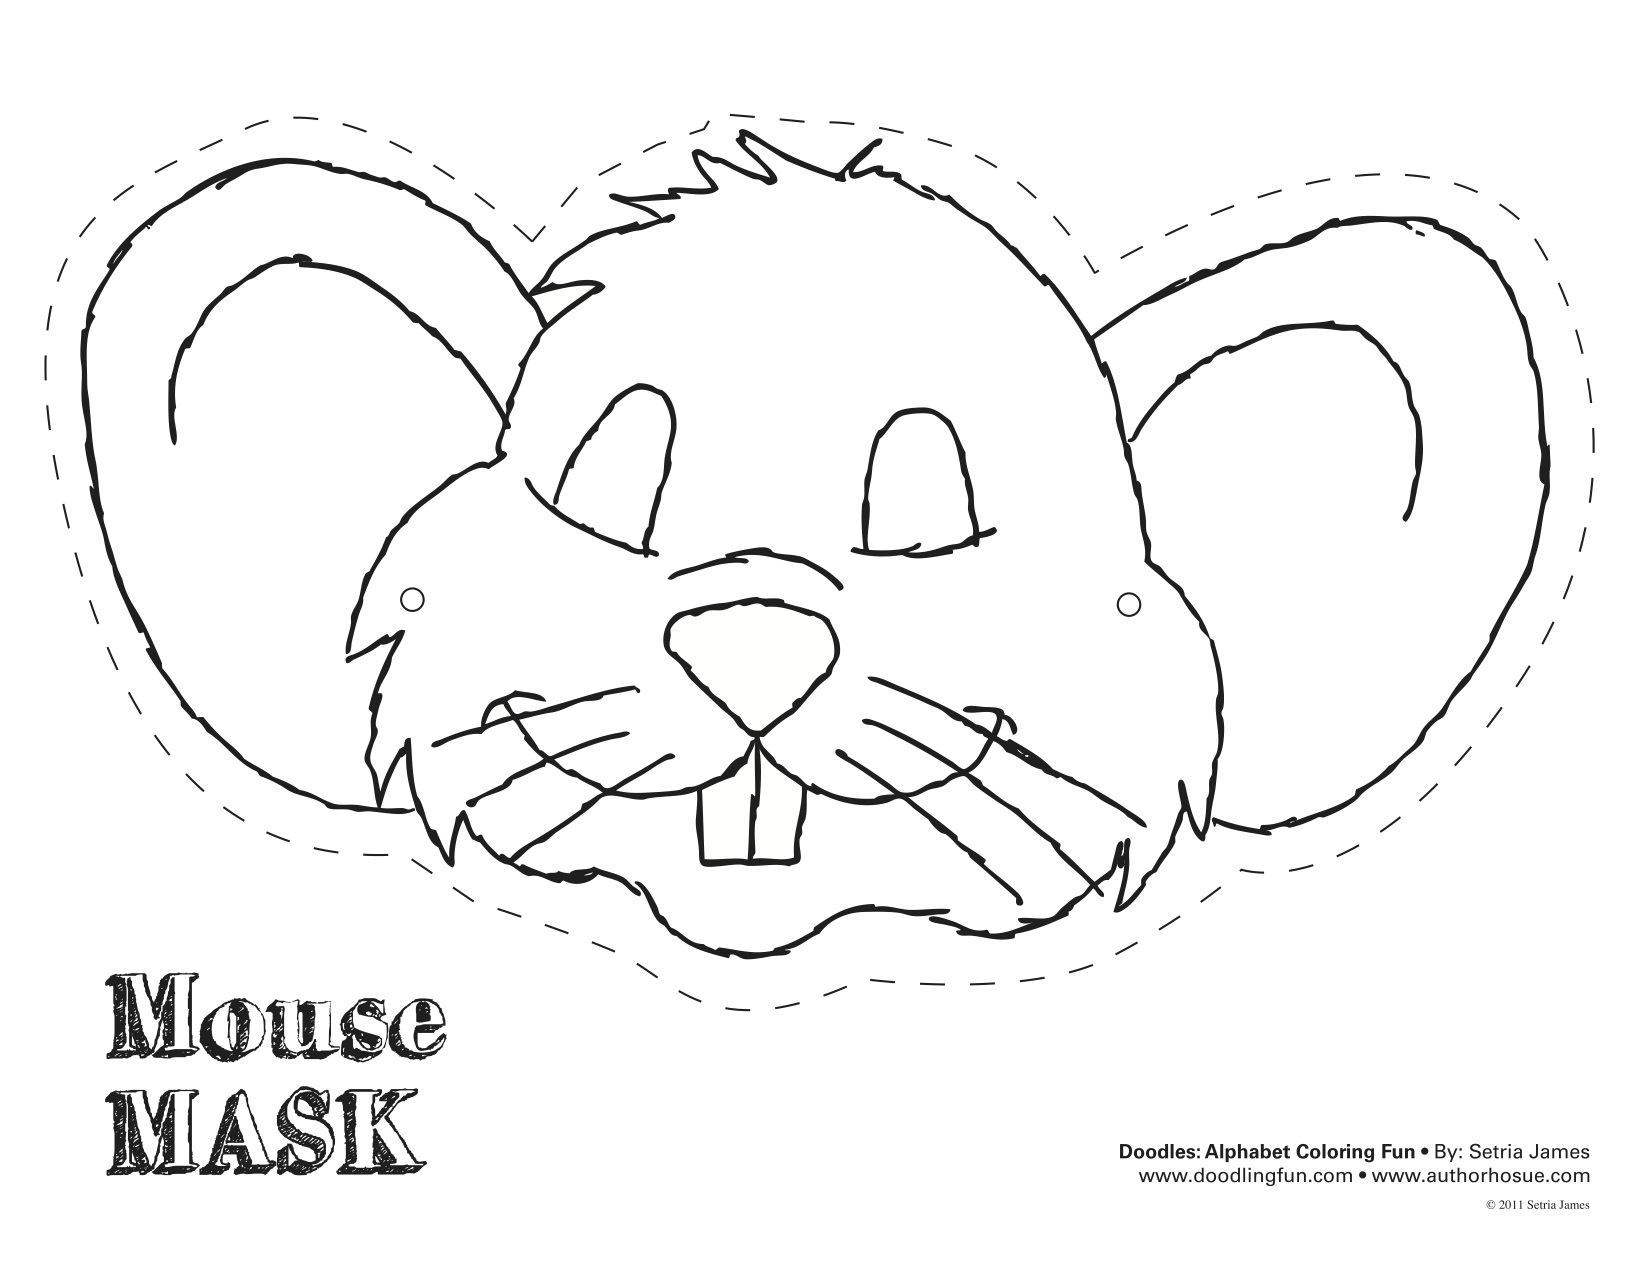 Printable Mask Template Site With Lots Of Great Printables And Activities For Kids  Ea's .